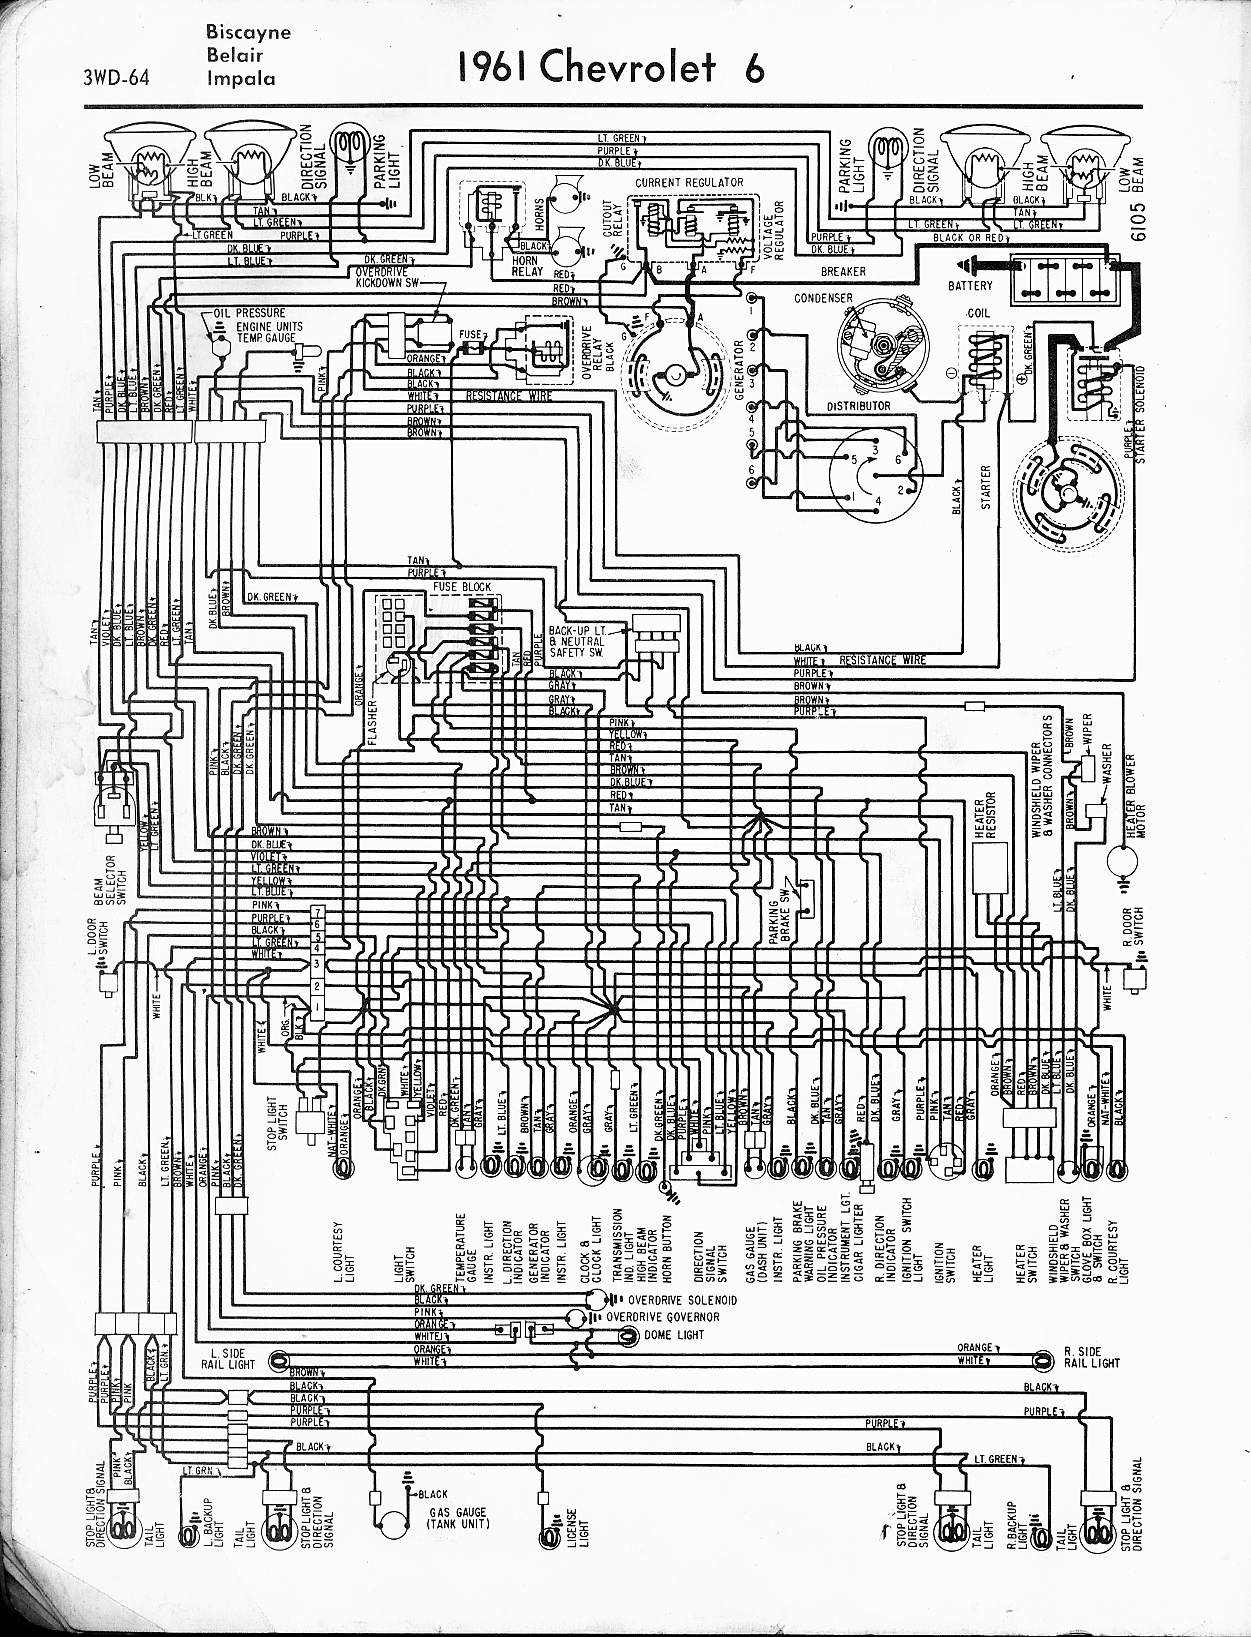 MWireChev61_3WD 064 57 65 chevy wiring diagrams 1960 impala wiring diagram at soozxer.org